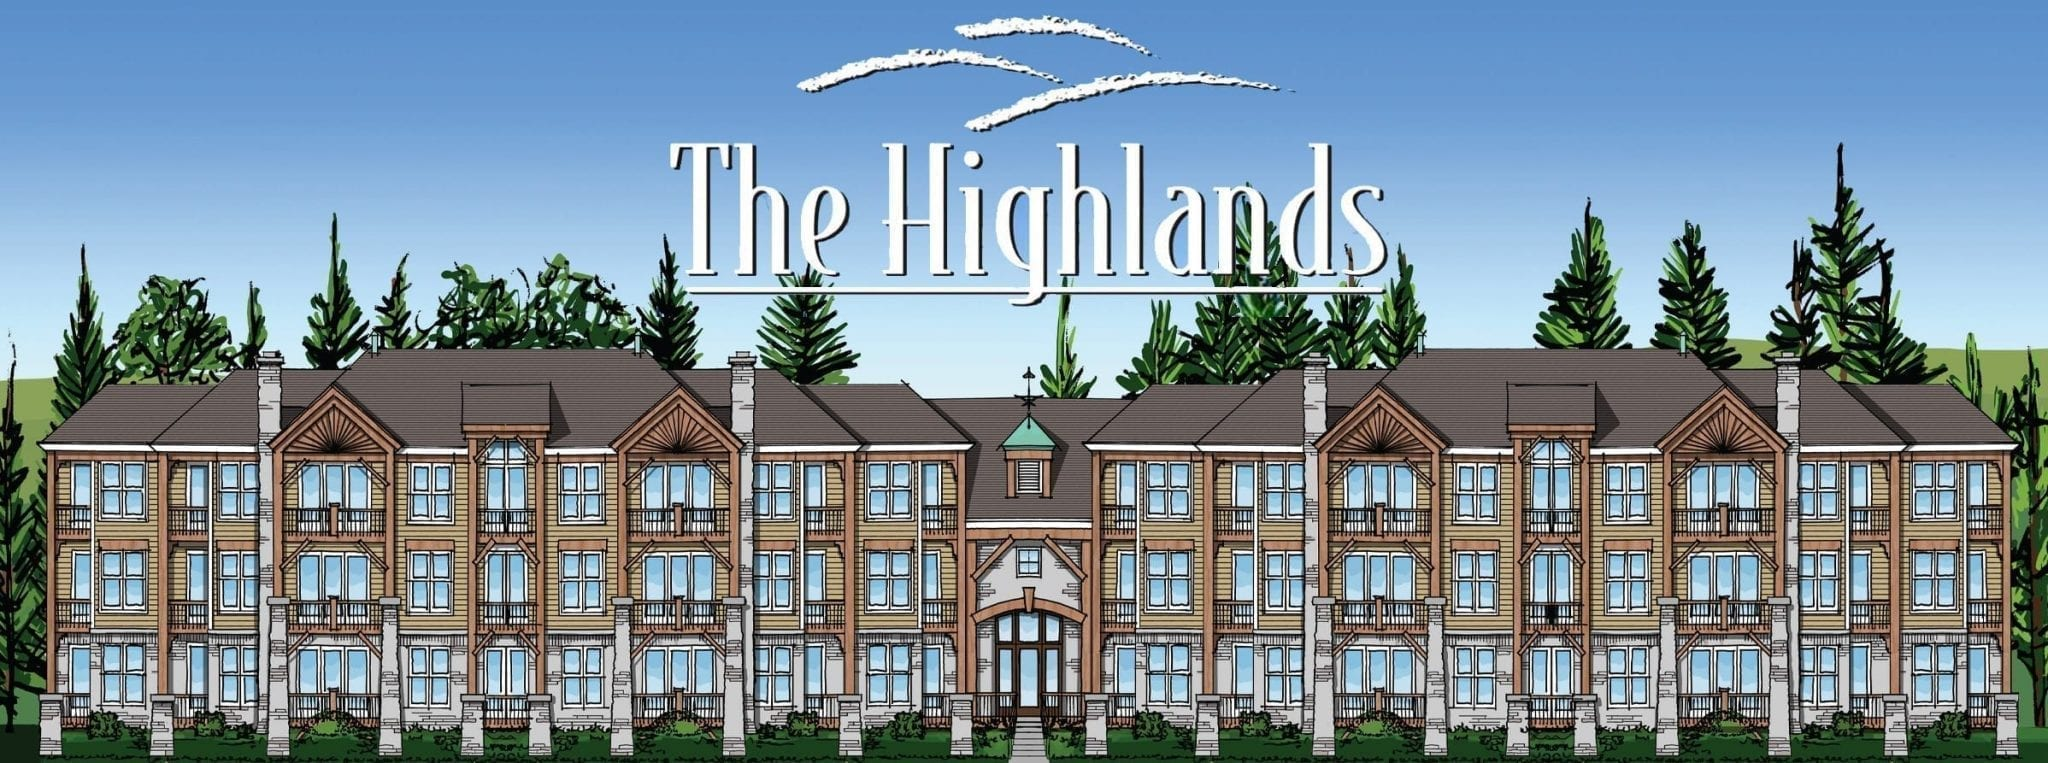 The Highlands Resort in Carolina by MWT Hotel & Resort Architect